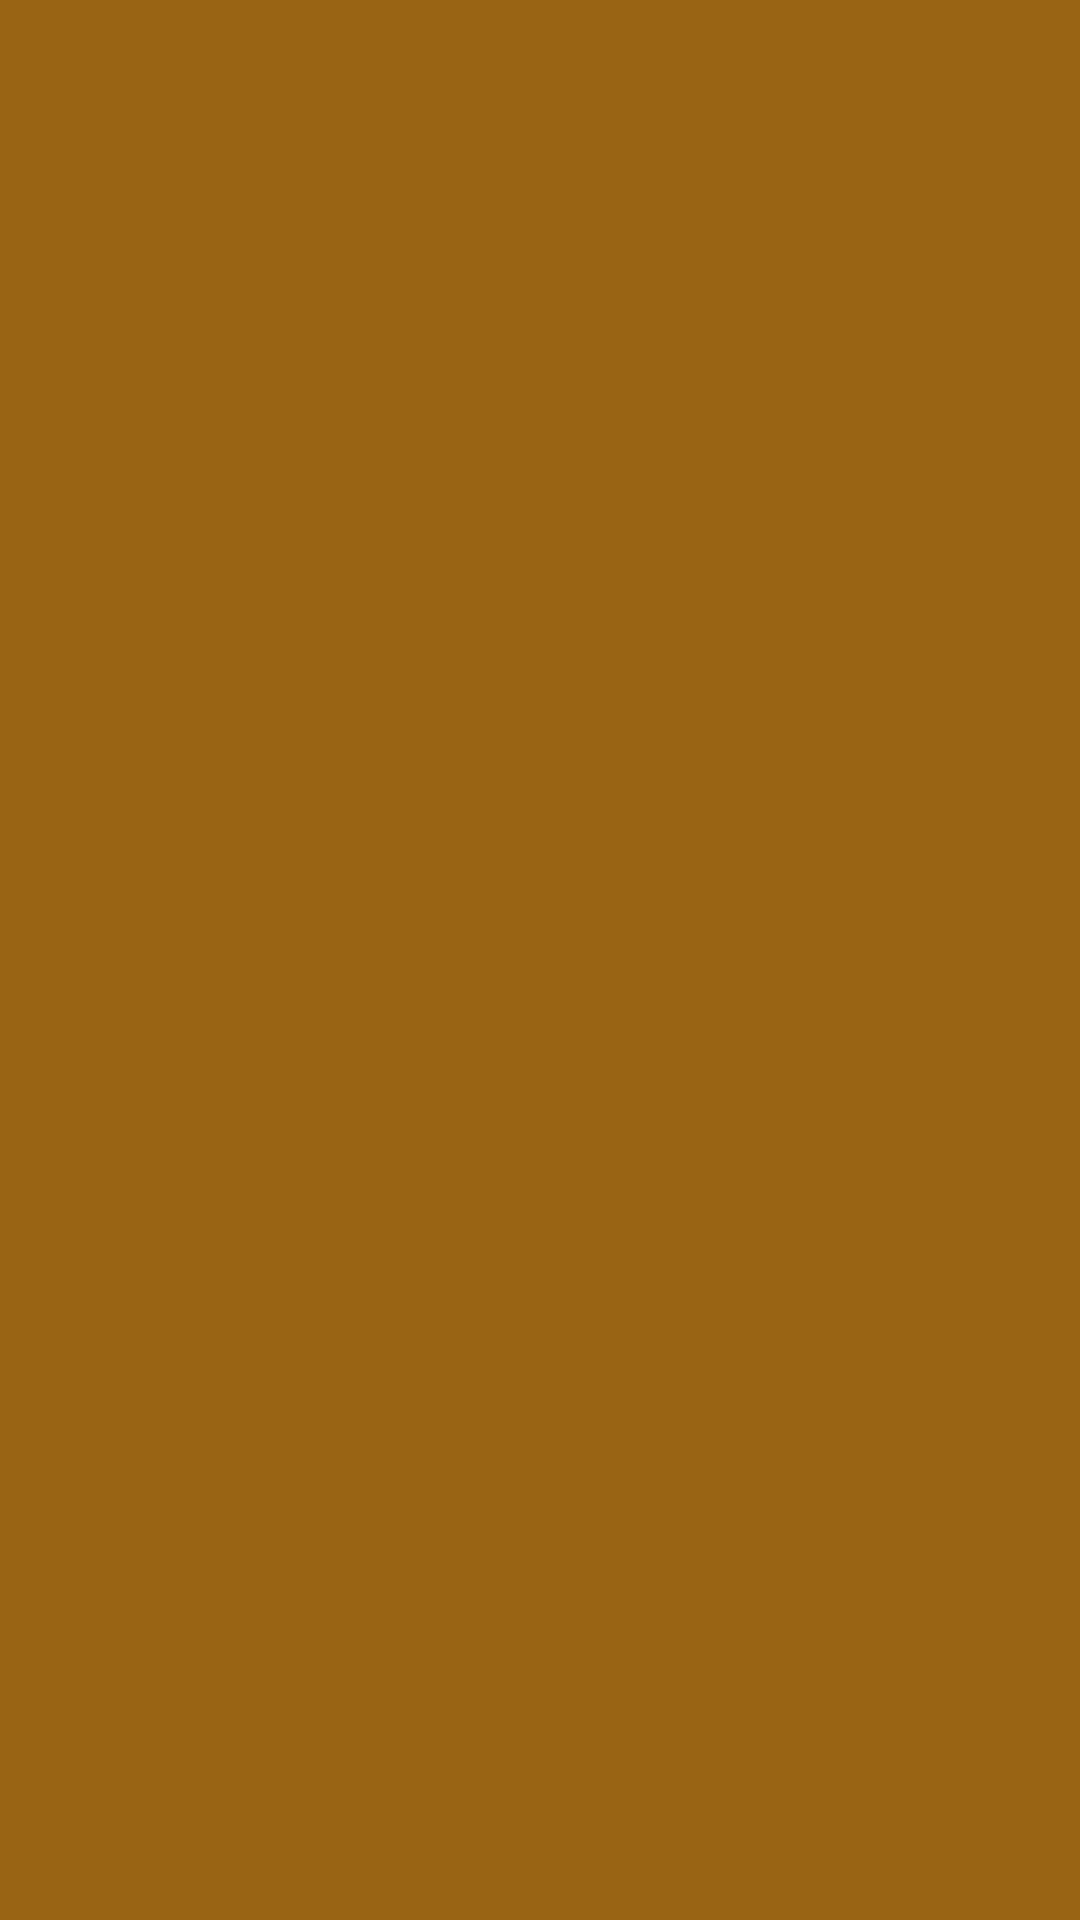 1080x1920 Golden Brown Solid Color Background